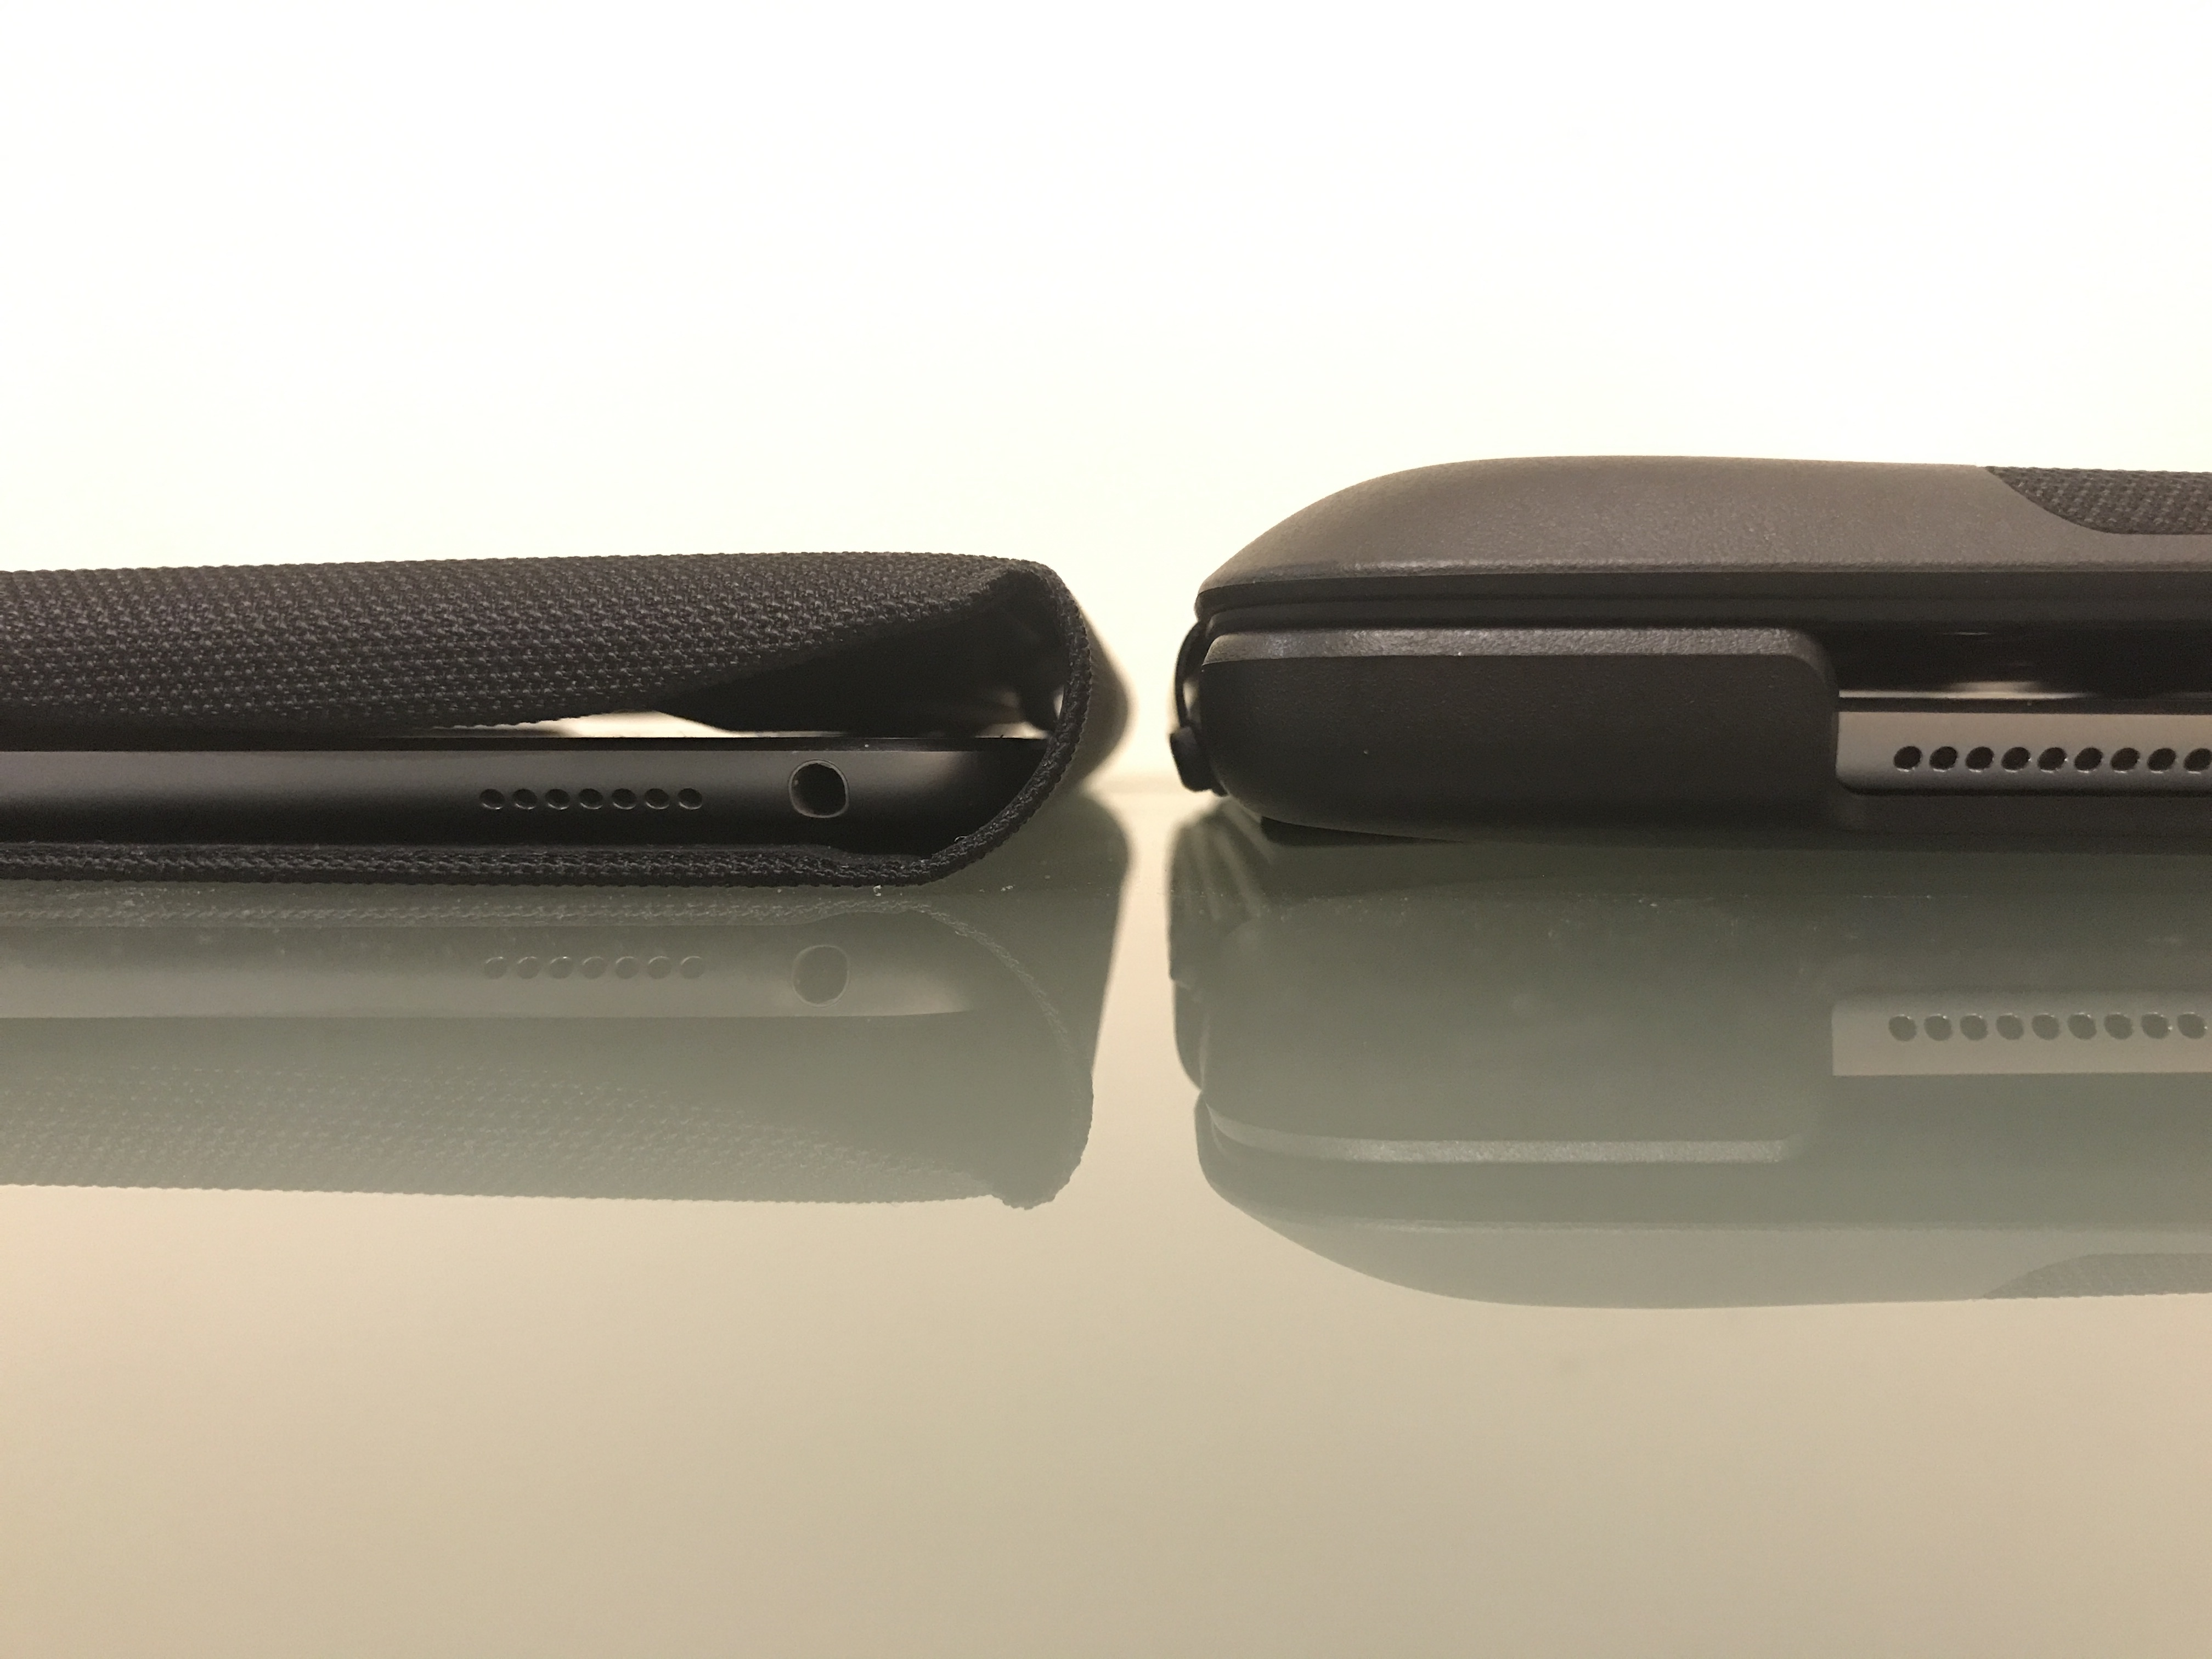 The side view of the Logitech case and the Apple Smart Keyboard next to each other. The Logitech case is about a third thicker than the Apple one.